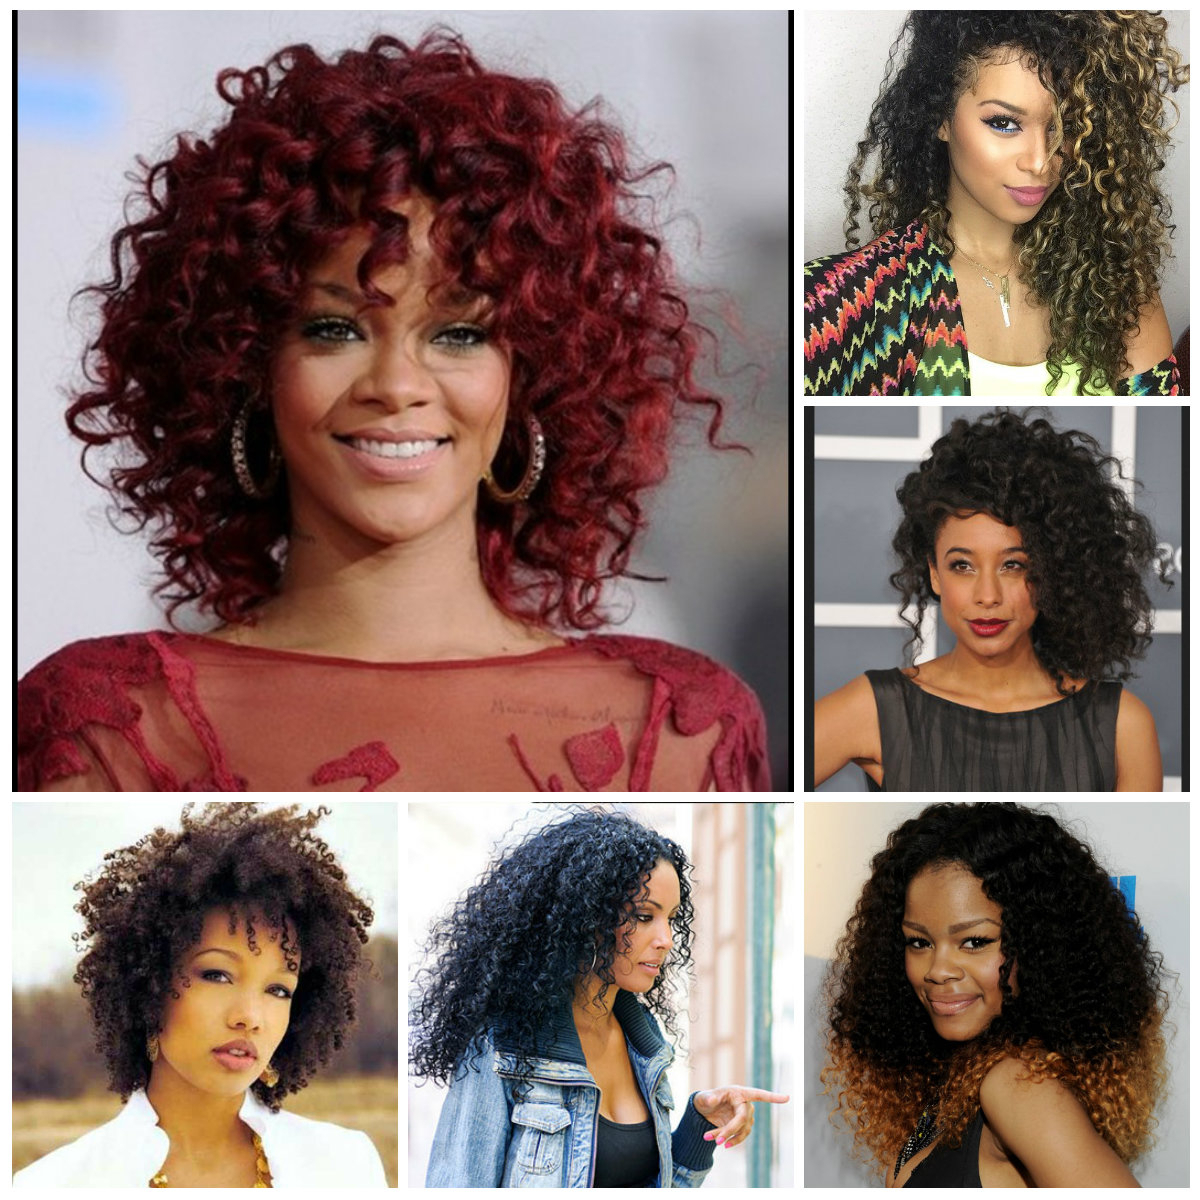 Black Short Curly Hairstyles 2017 – Leymatson With Regard To Curly Black Short Hairstyles (View 20 of 25)